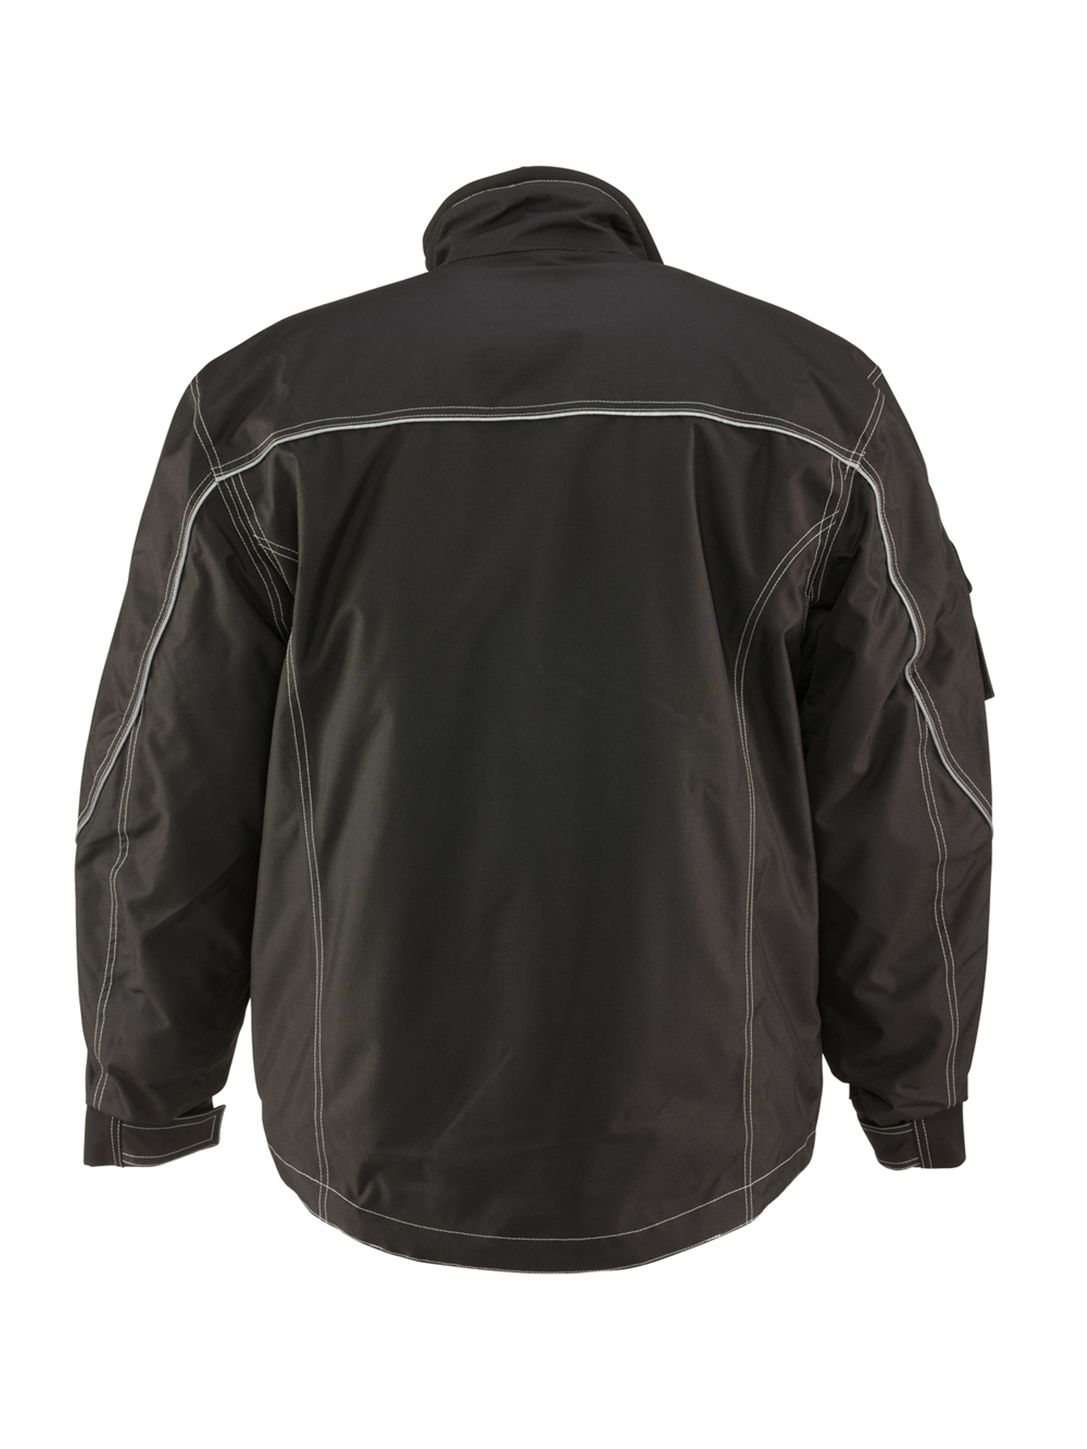 refrigiwear-8042-ergoforce-jacket-back-view.jpg